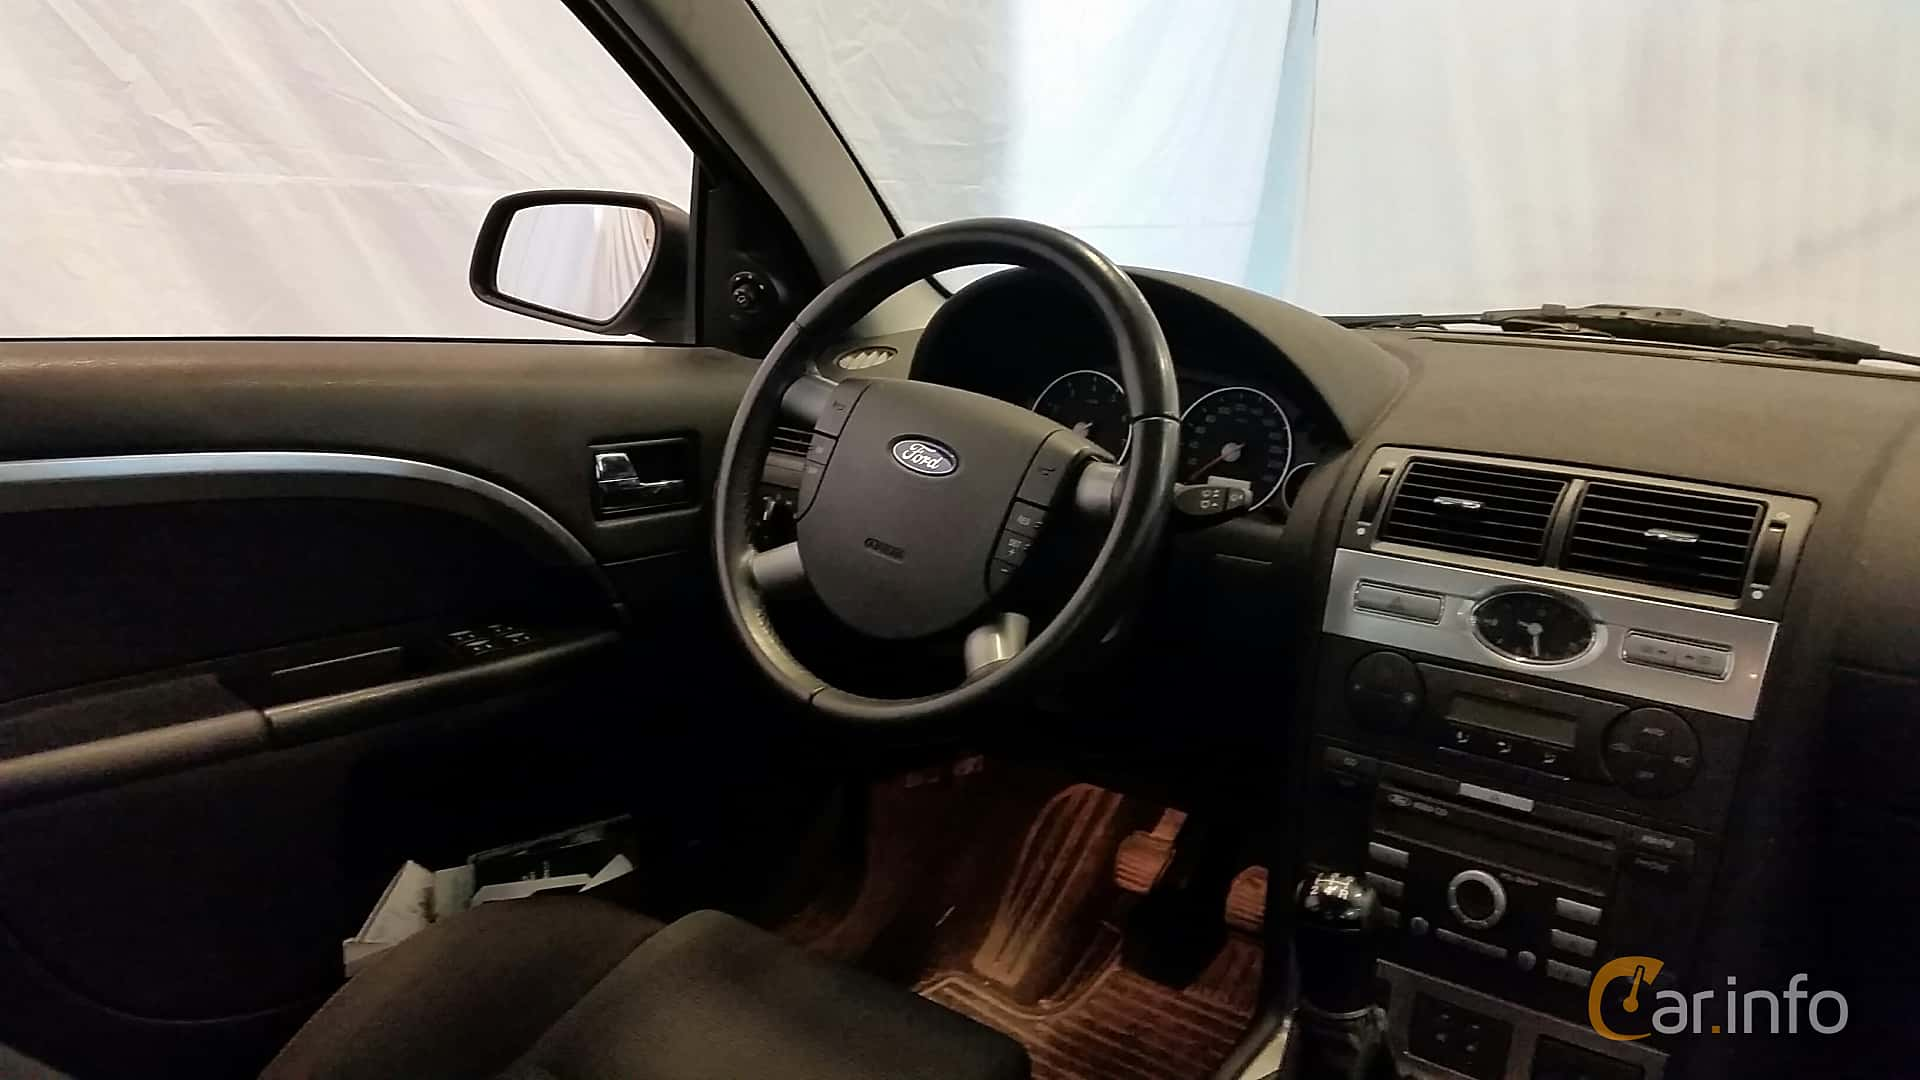 Ford Mondeo Hatchback 2 0 Manual, 145hp, 2005